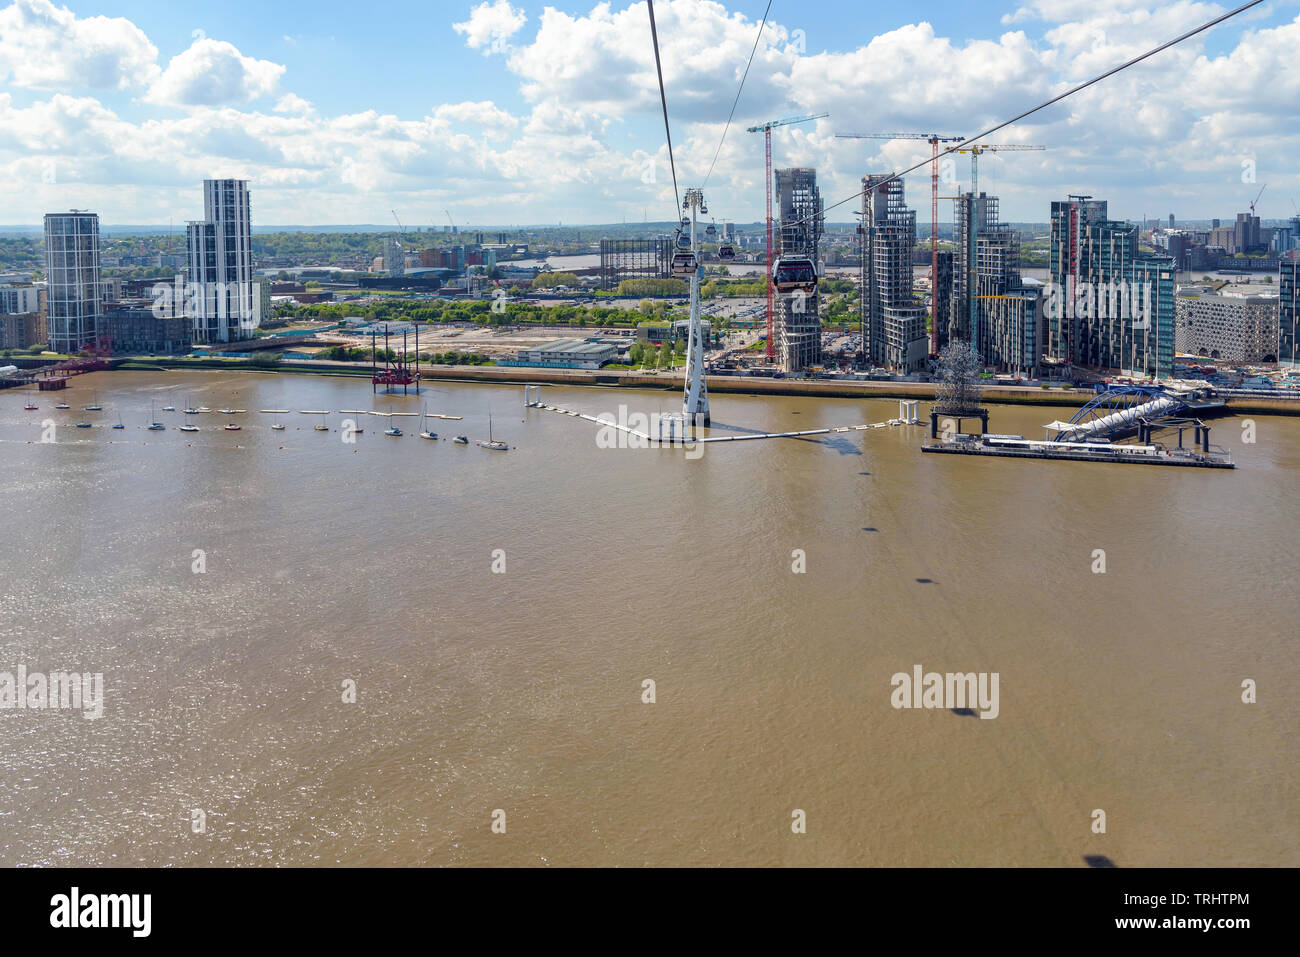 London, UK - May 1, 2018: Gondolas of Emirates Air Line arrive to station at Greenwich Peninsula in eastern London - Stock Image